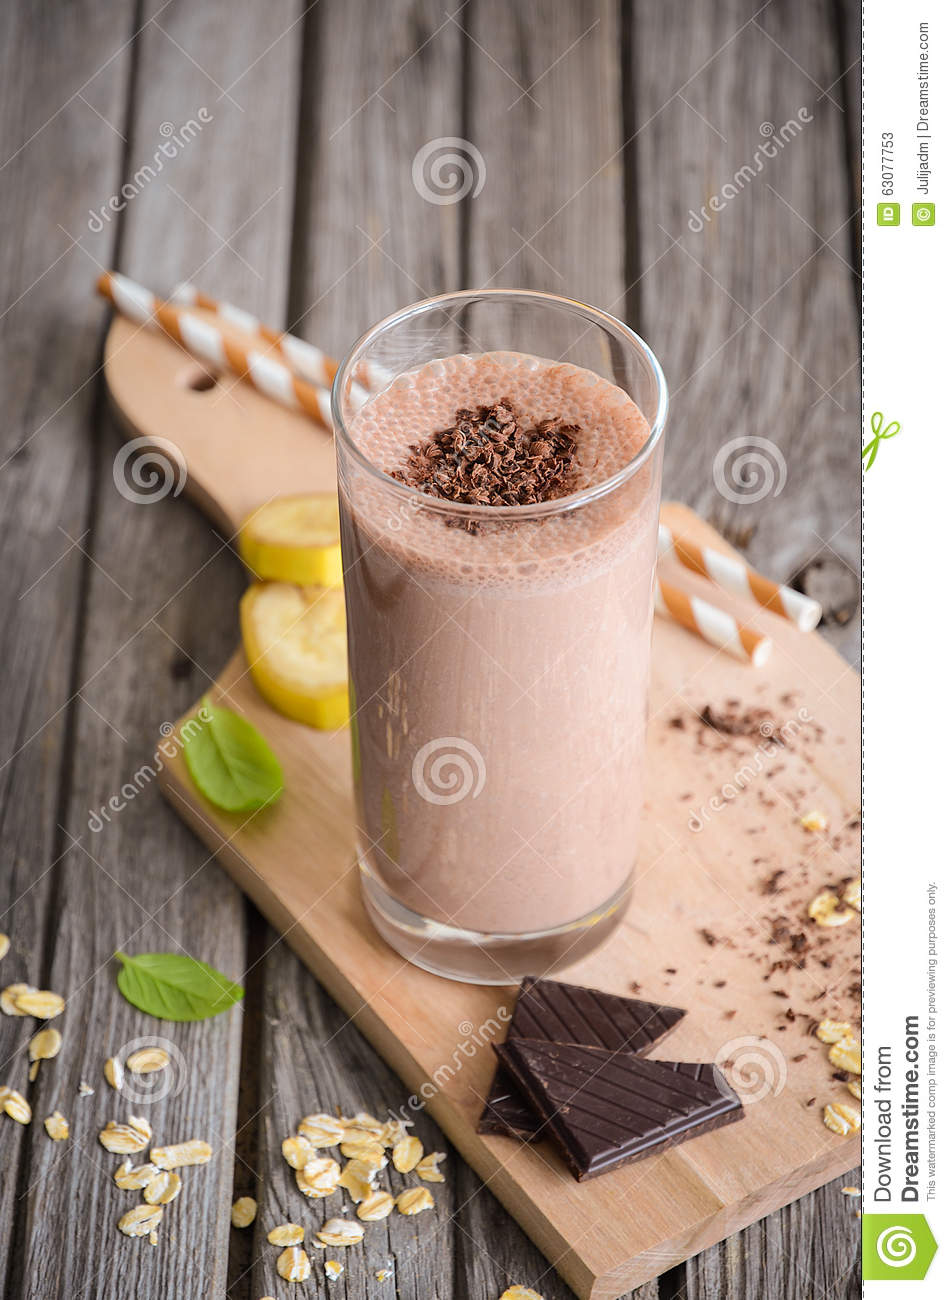 Download Smoothie De Chocolat Et De Banane Avec La Farine D'avoine Image stock - Image du fruit, breakfast: 63077753